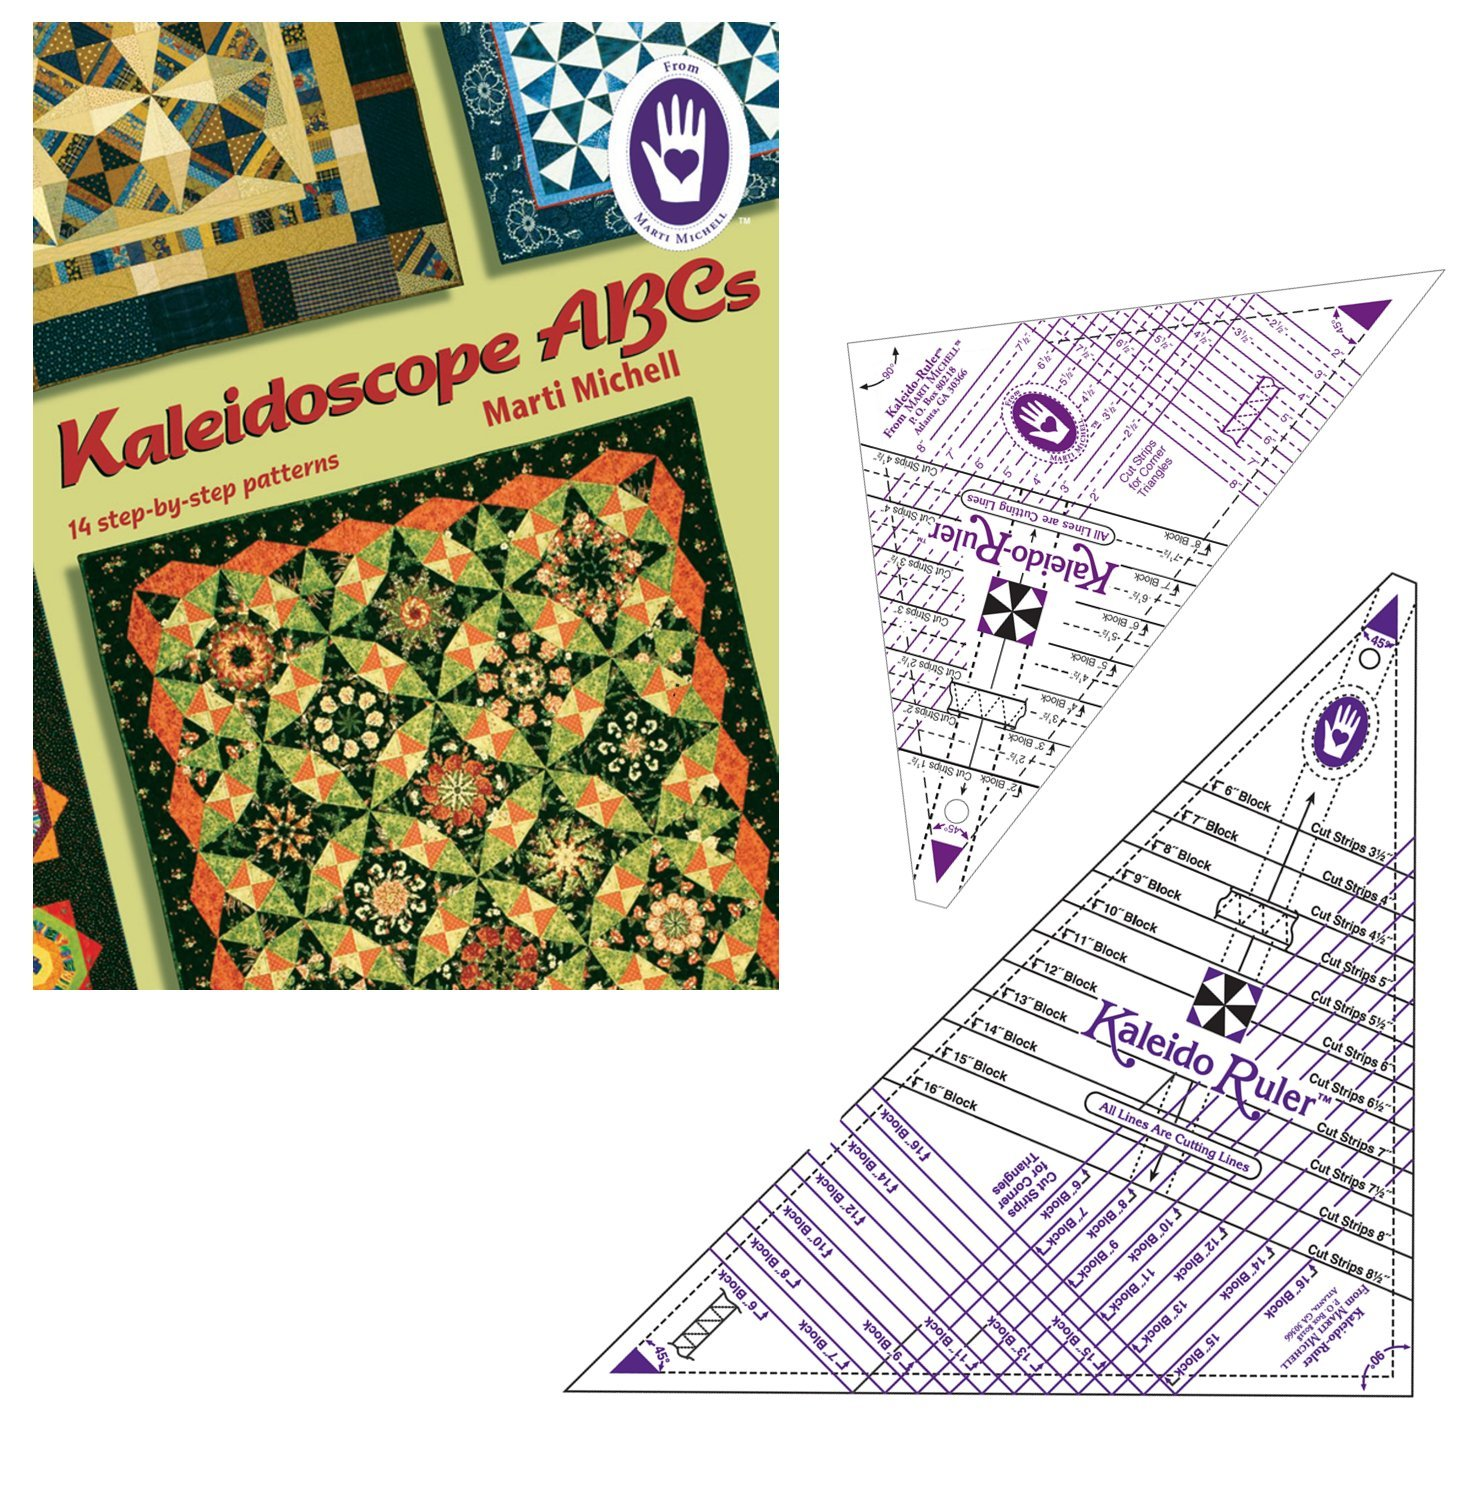 Marti Michell Kaleidoscope Rulers and Kaleidoscope ABCs Quilting Book Bundle, 3 Items by Marti Michell